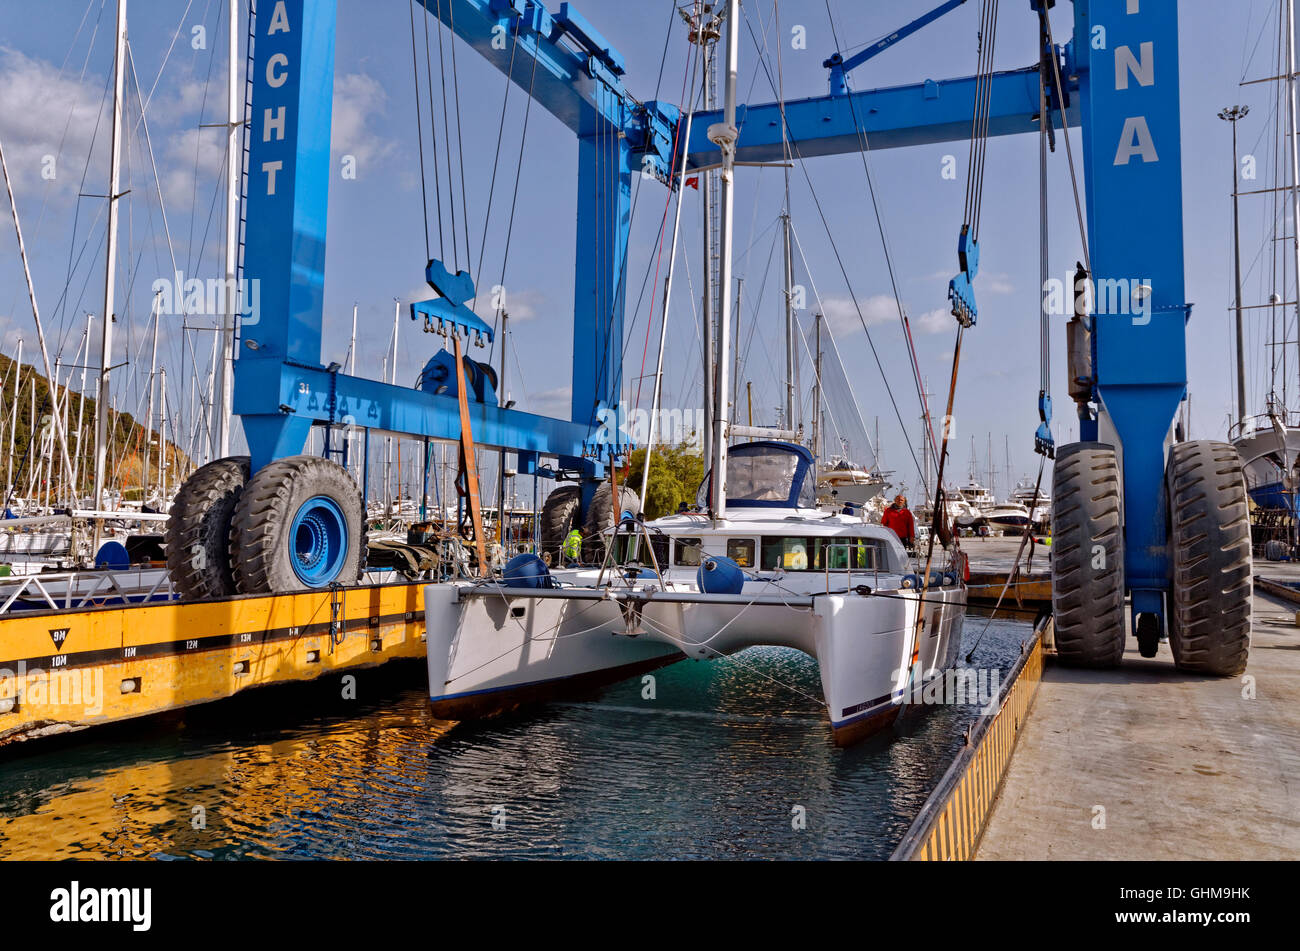 Catamaran being lifted or launched by yacht crane. - Stock Image